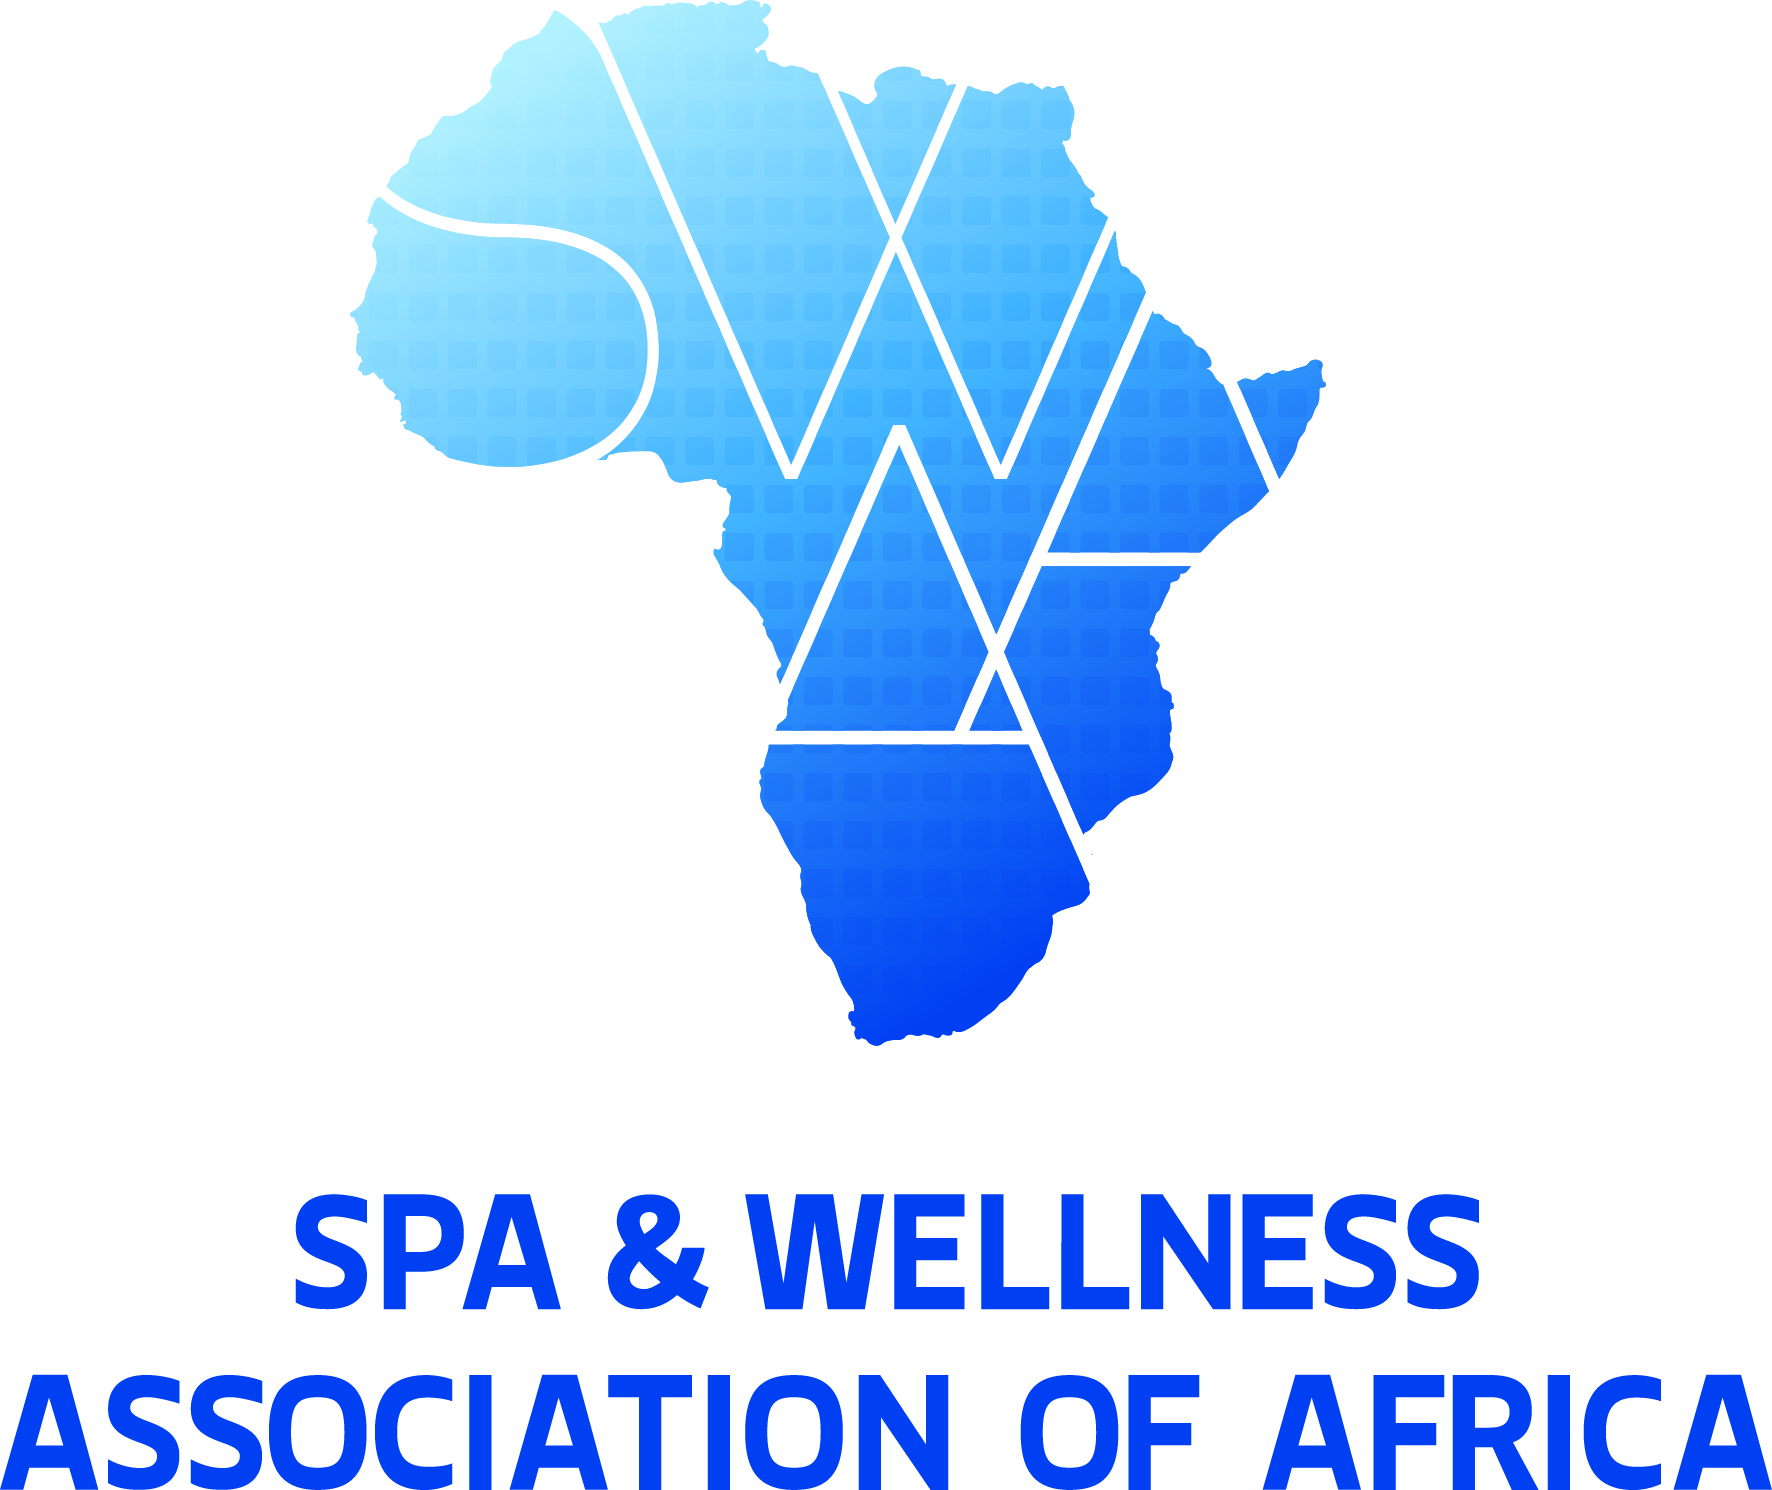 SPA & WELLNESS ASSOCIATION OF AFRICA, Mauritius